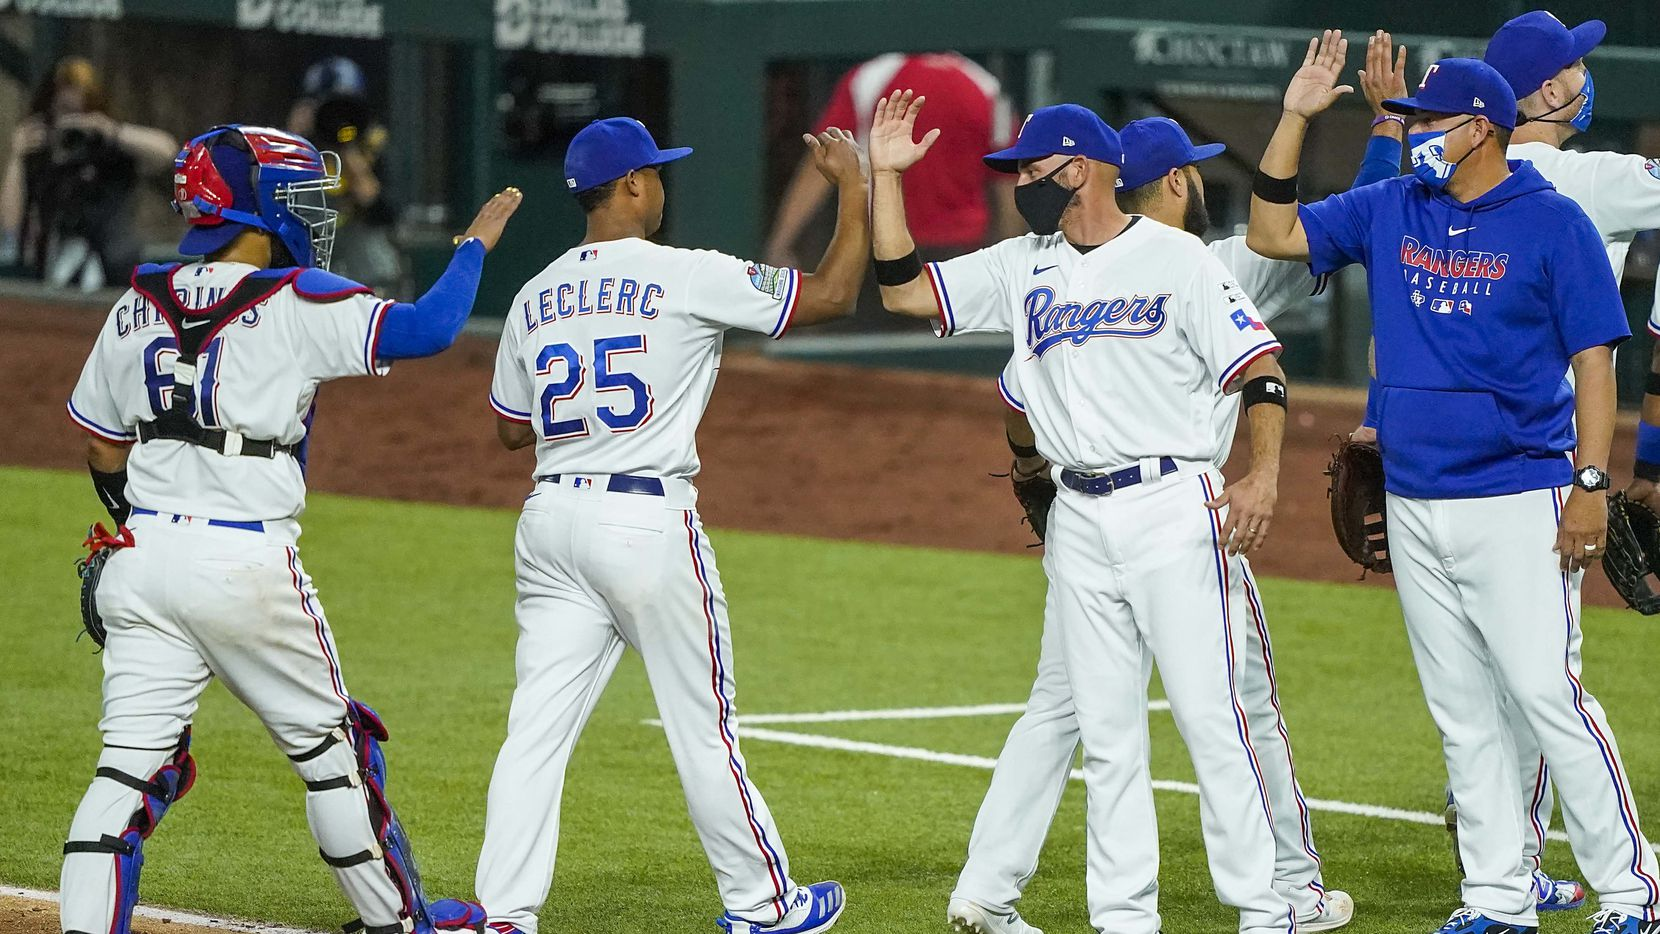 Texas Rangers pitcher Jose Leclerc bumps forearms with manager Chris Woodward as they celebrate after a 1-0 victory on opening day against the Colorado Rockies at Globe Life Field on Friday, July 24, 2020.